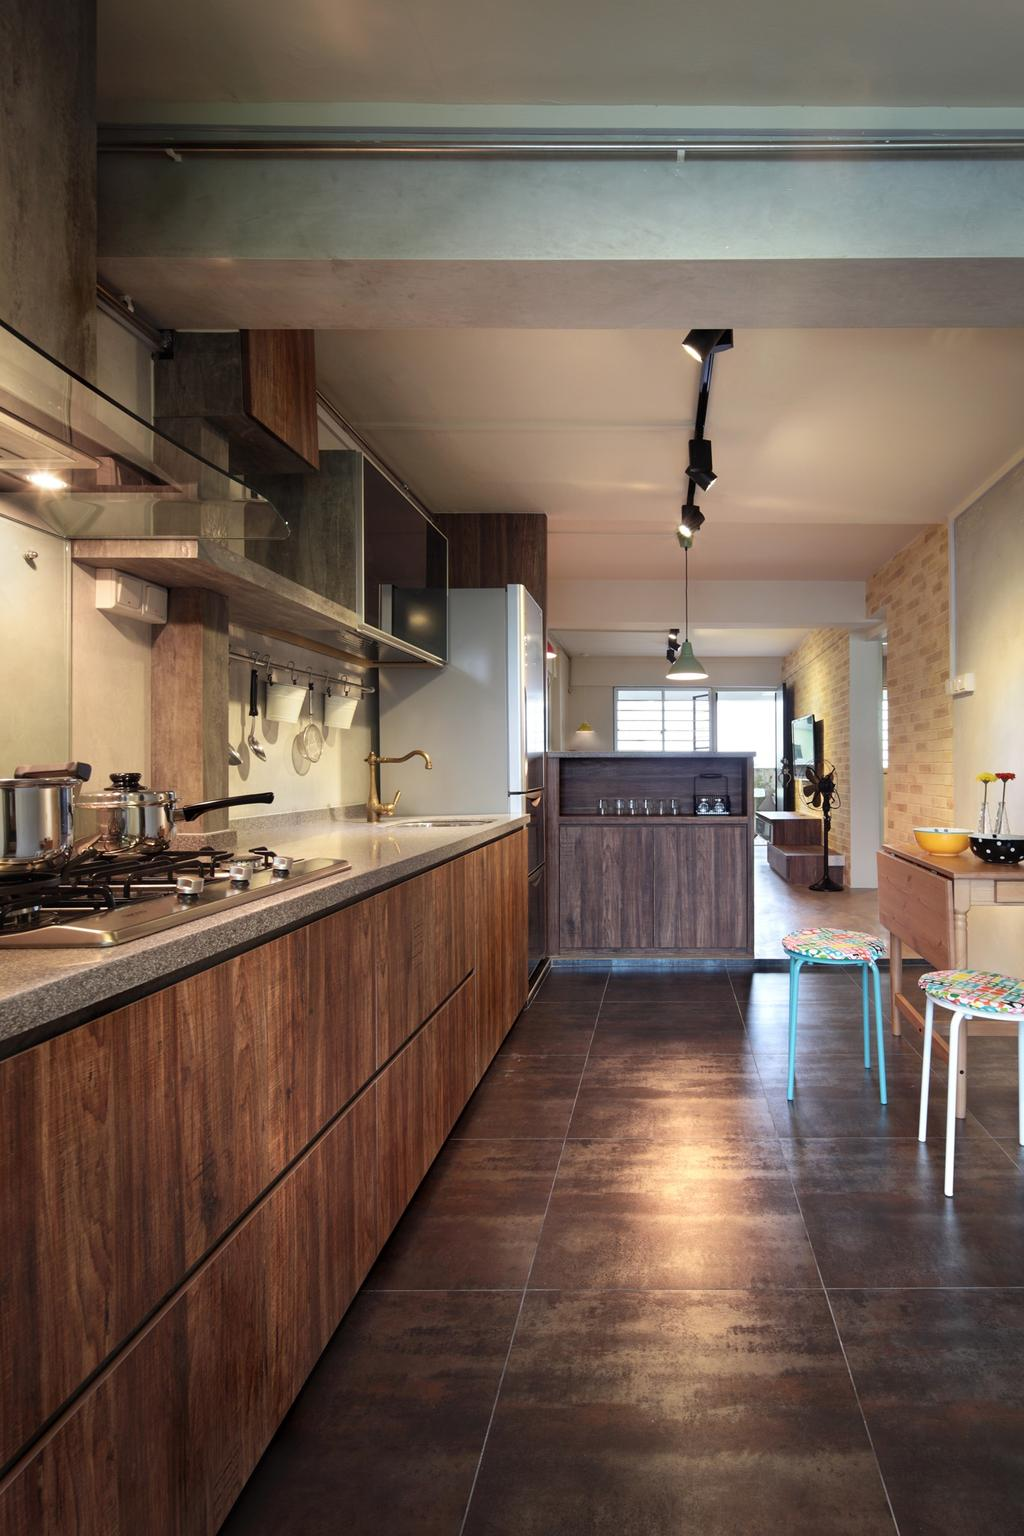 Scandinavian, HDB, Kitchen, Marine Crescent, Interior Designer, Space Define Interior, Rustic, Track Lighting, Stools, Chair, Table, Kitchen Counter, Cabinet, Wood Laminate, Indoors, Interior Design, Room, Appliance, Electrical Device, Oven, Bar Stool, Furniture, Flooring